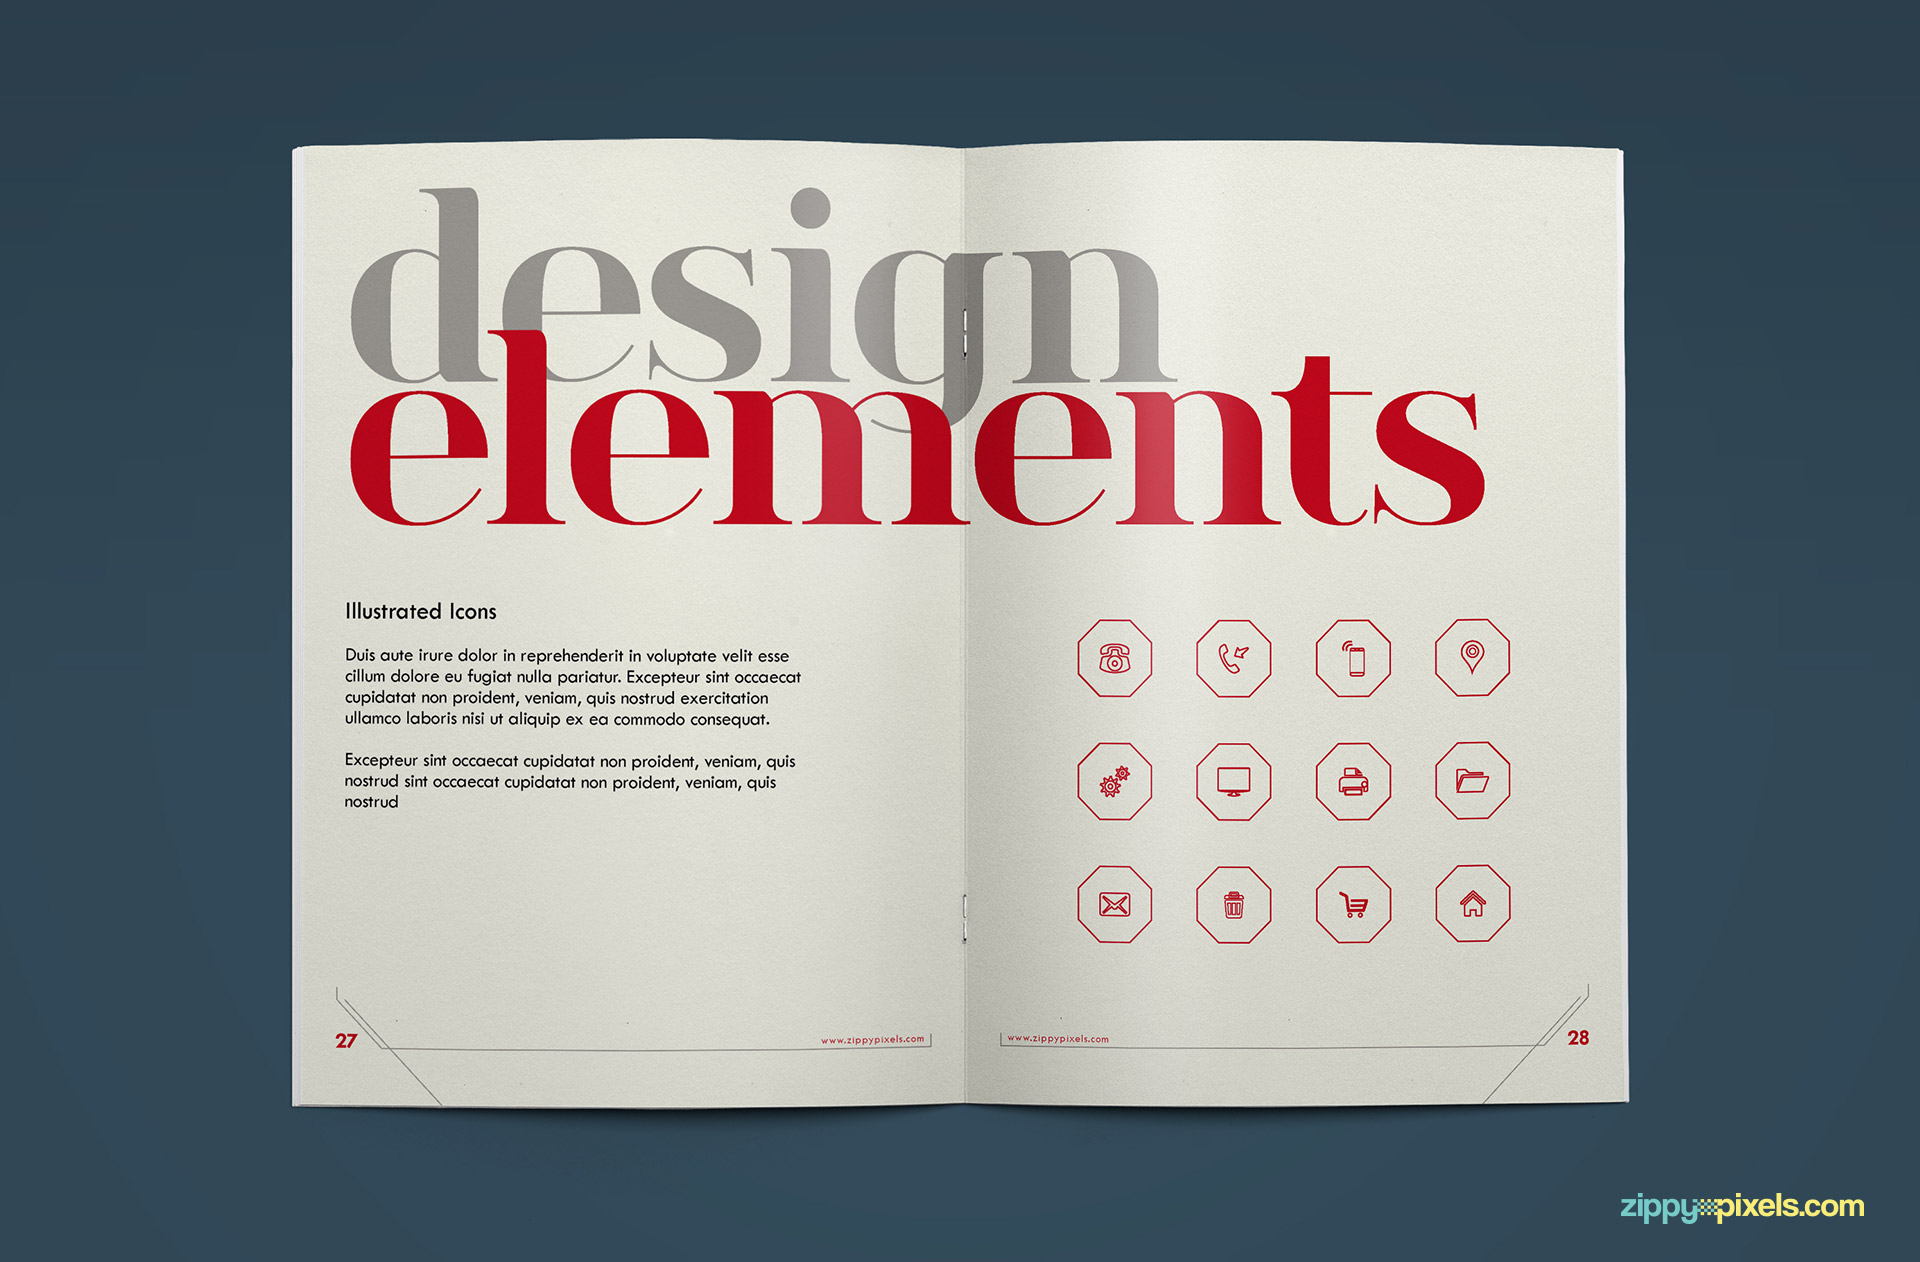 17-brand-book-10-design-elements